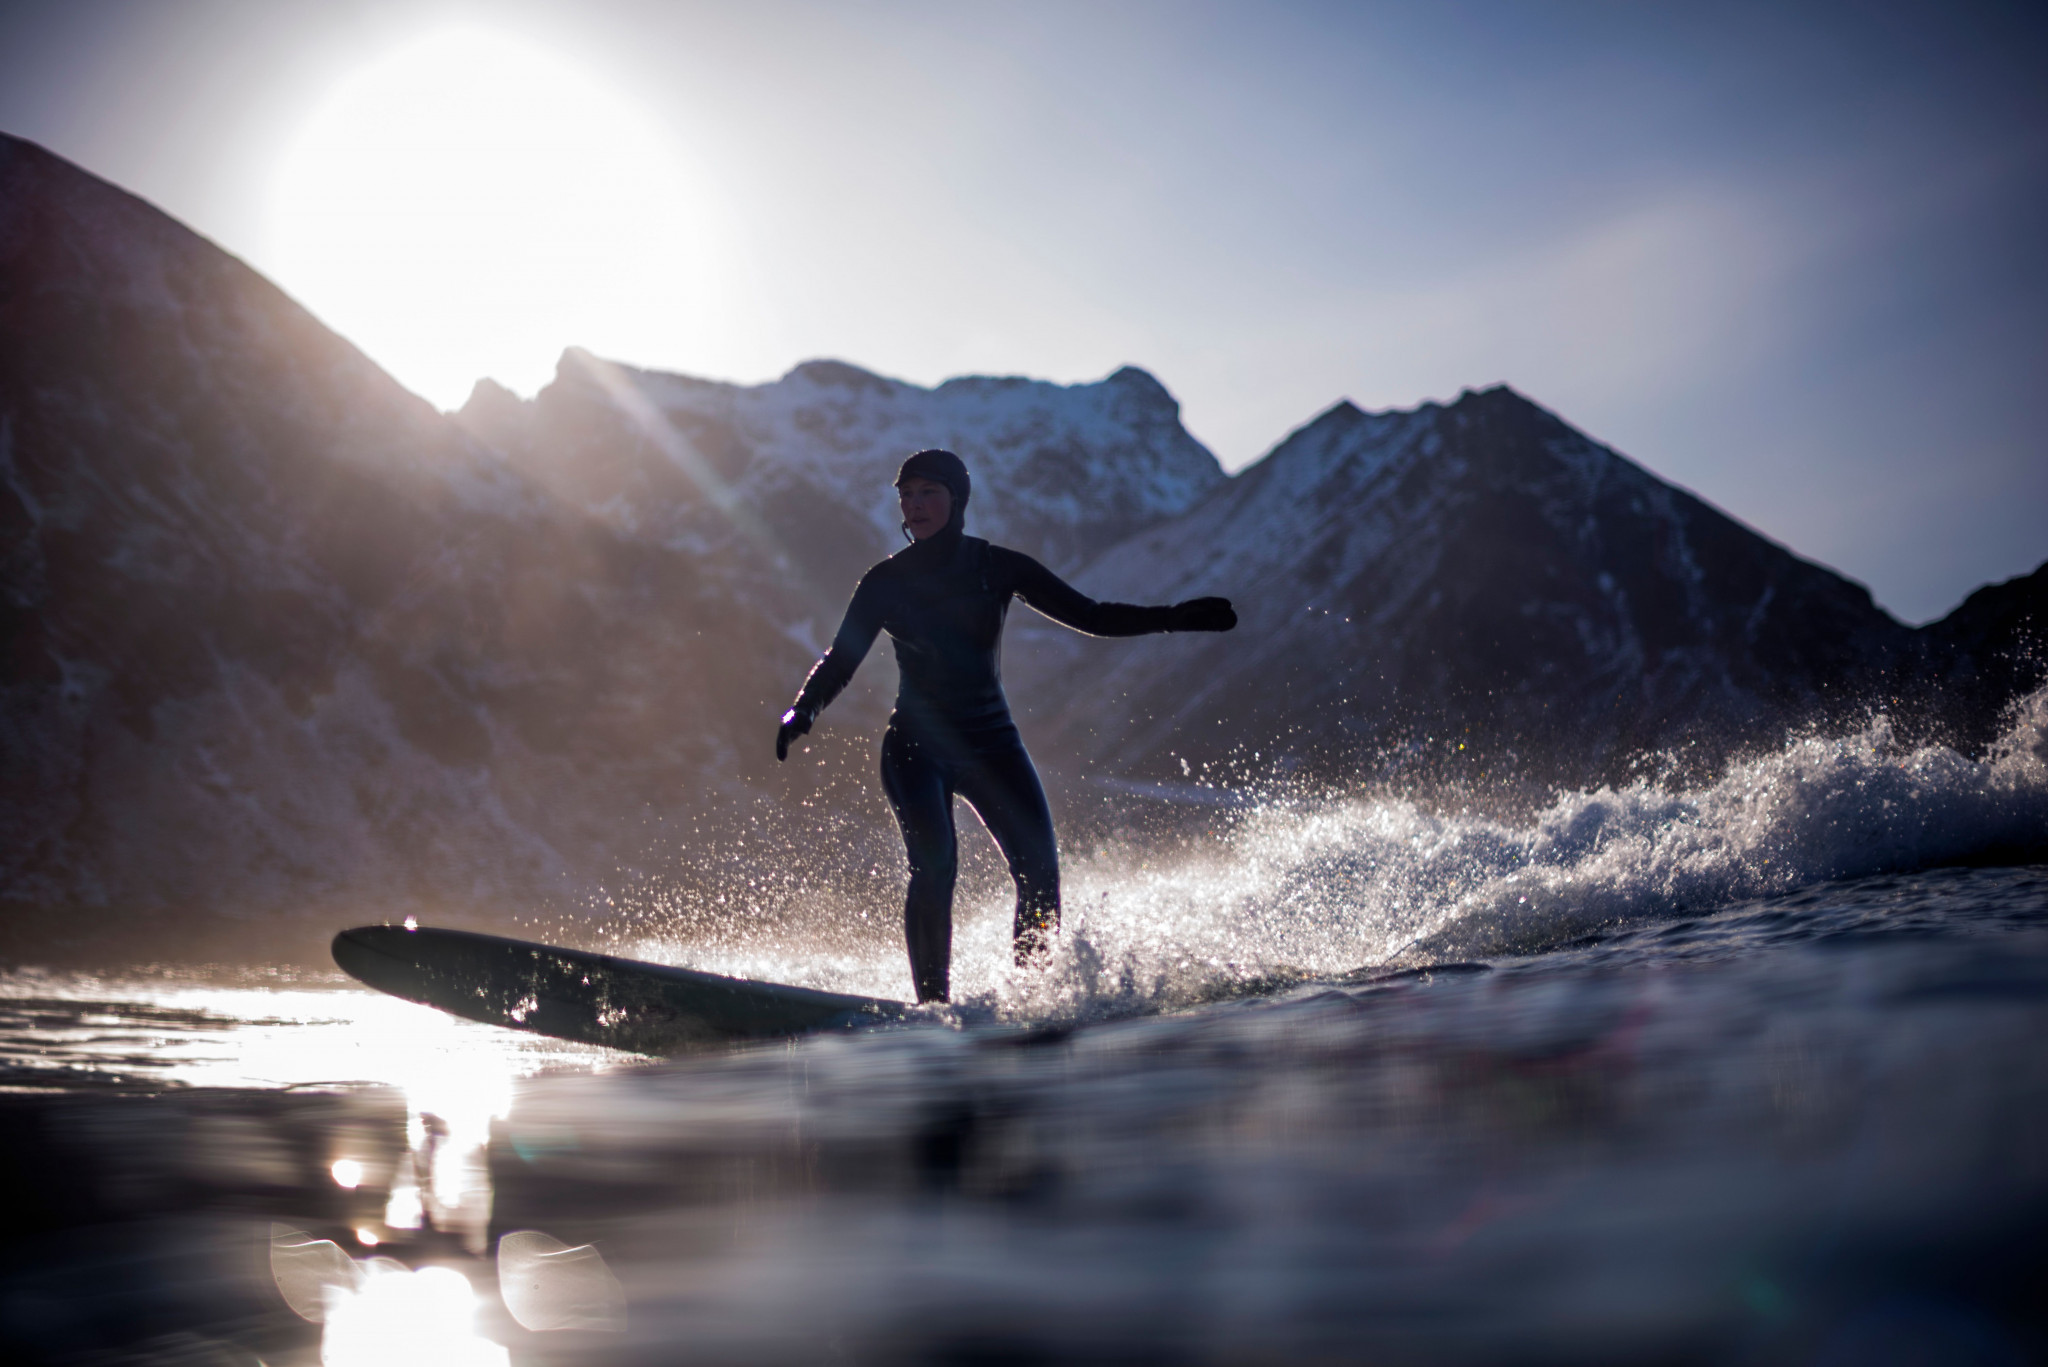 International Surfing Association joins UN Sports for Climate Action Framework